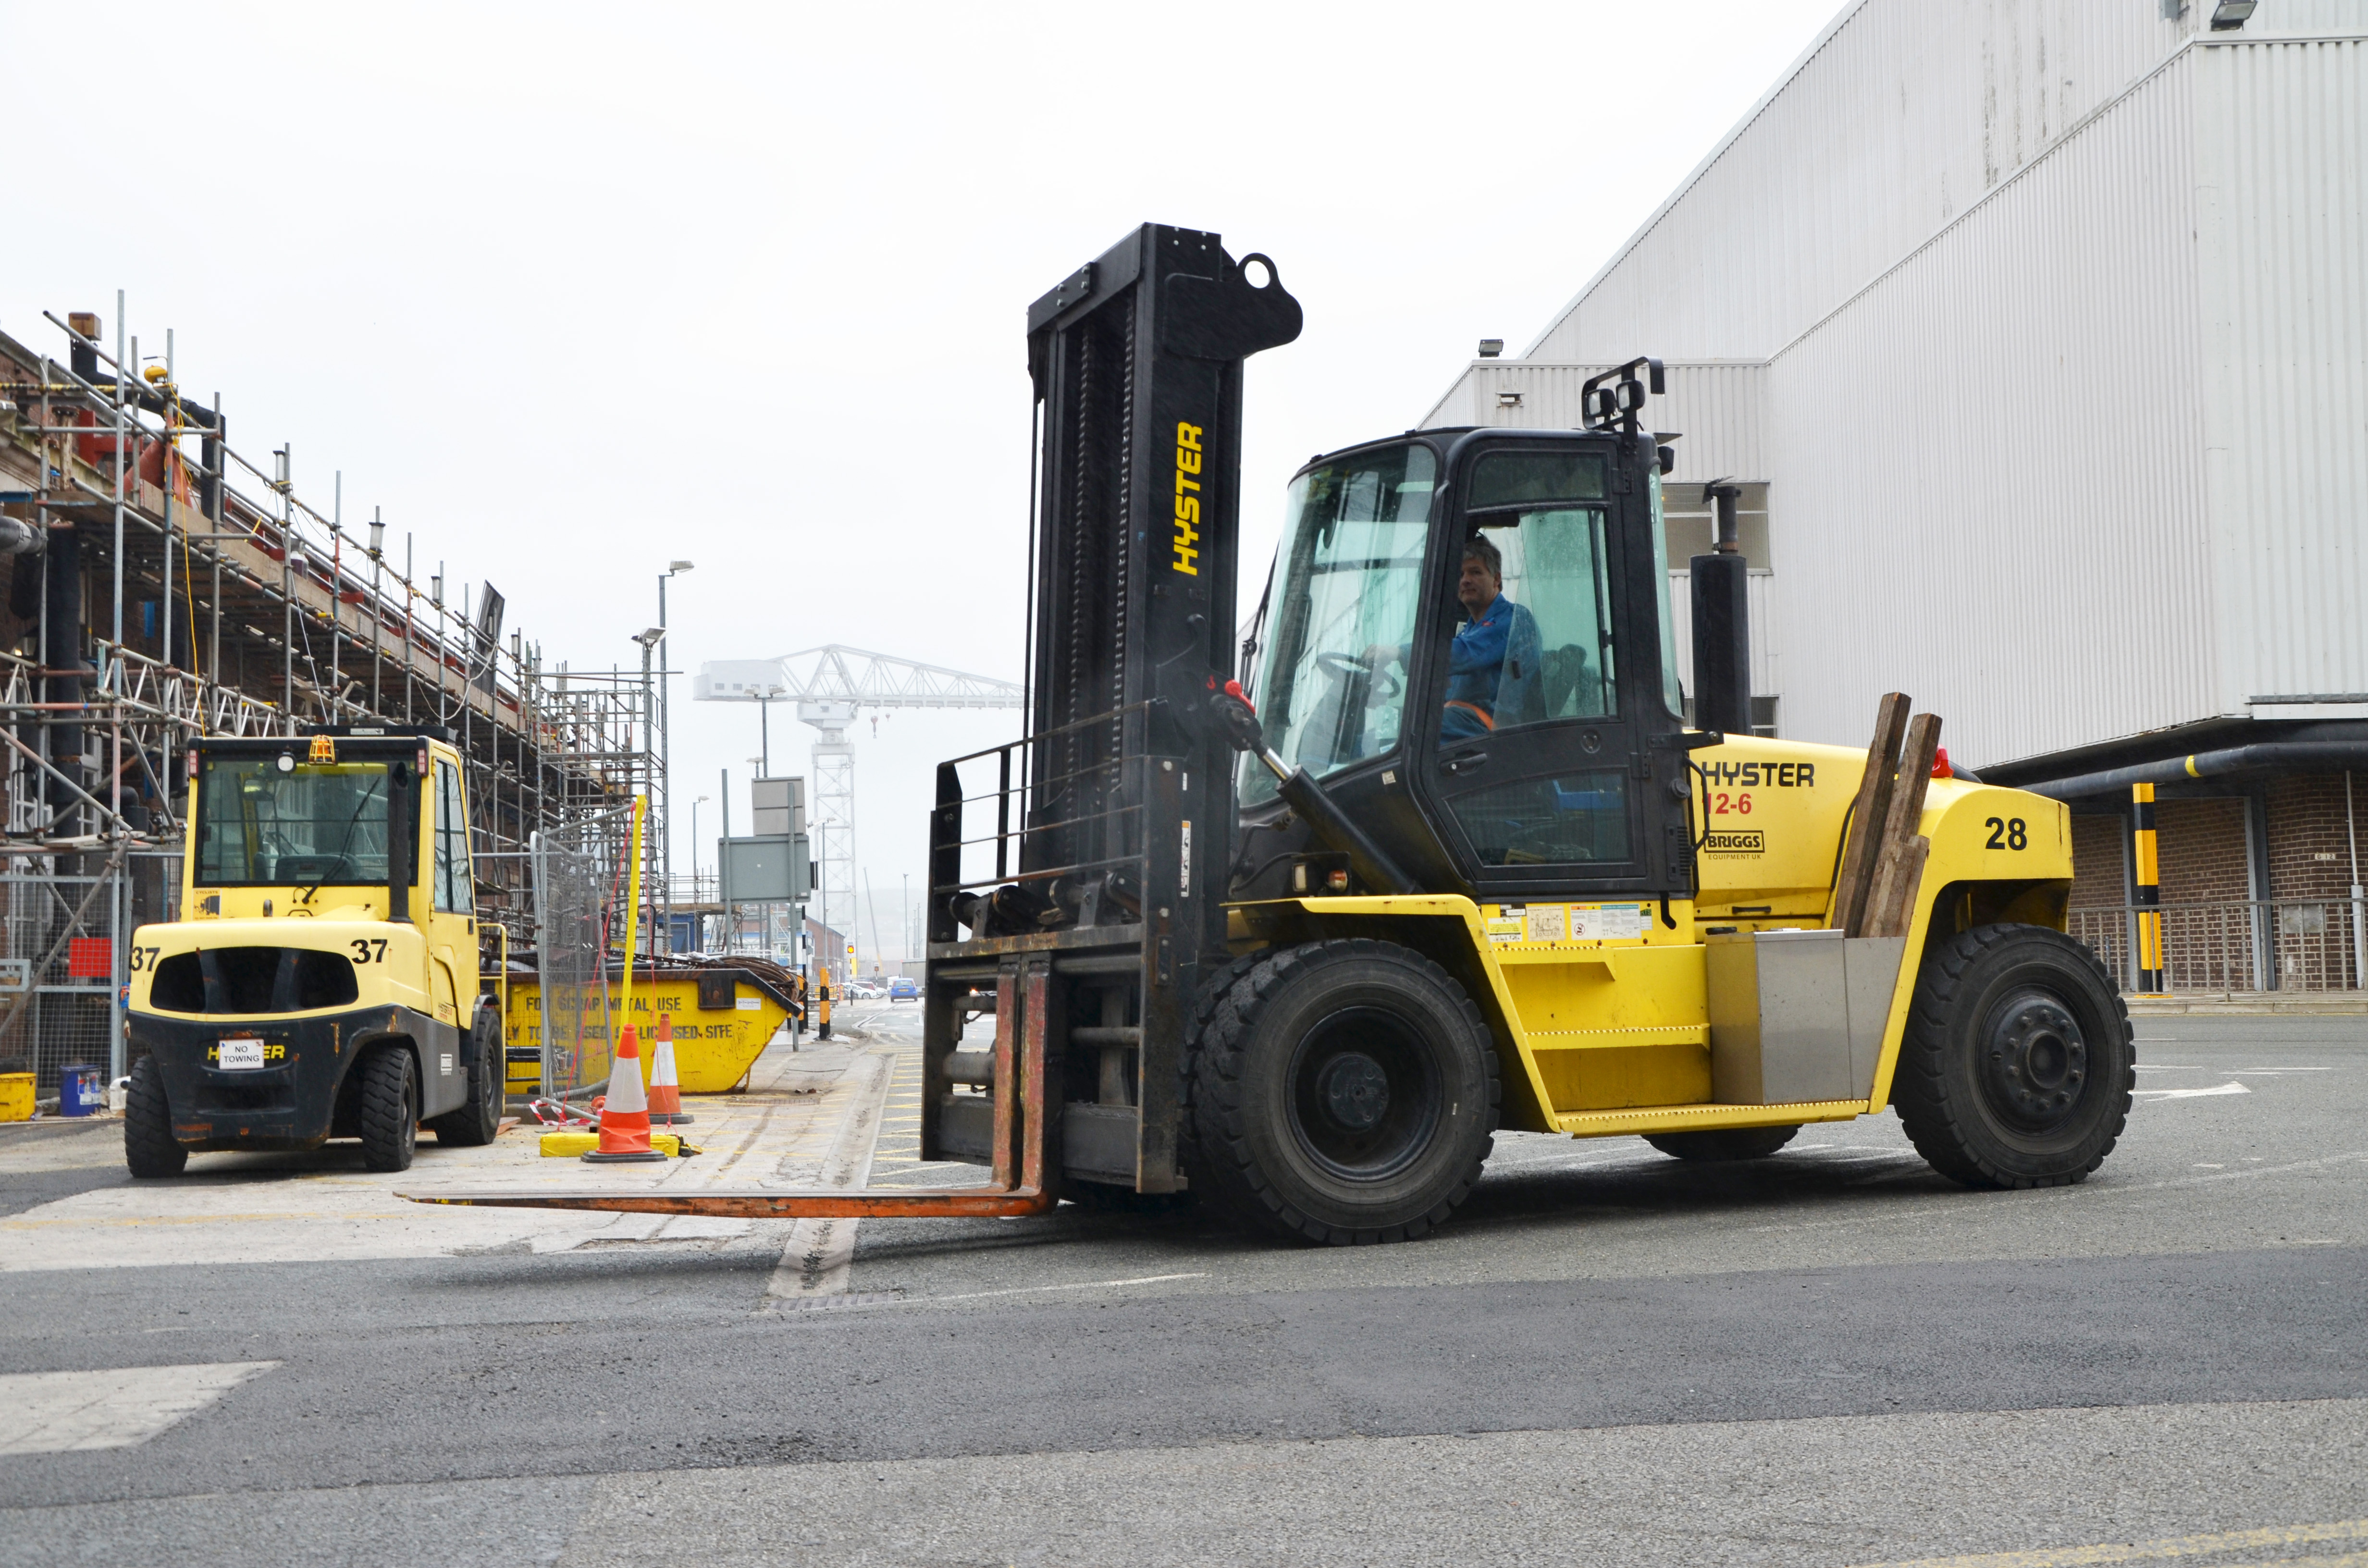 Fork Lift Controls : Naval base automates fleet control with hyster tracker